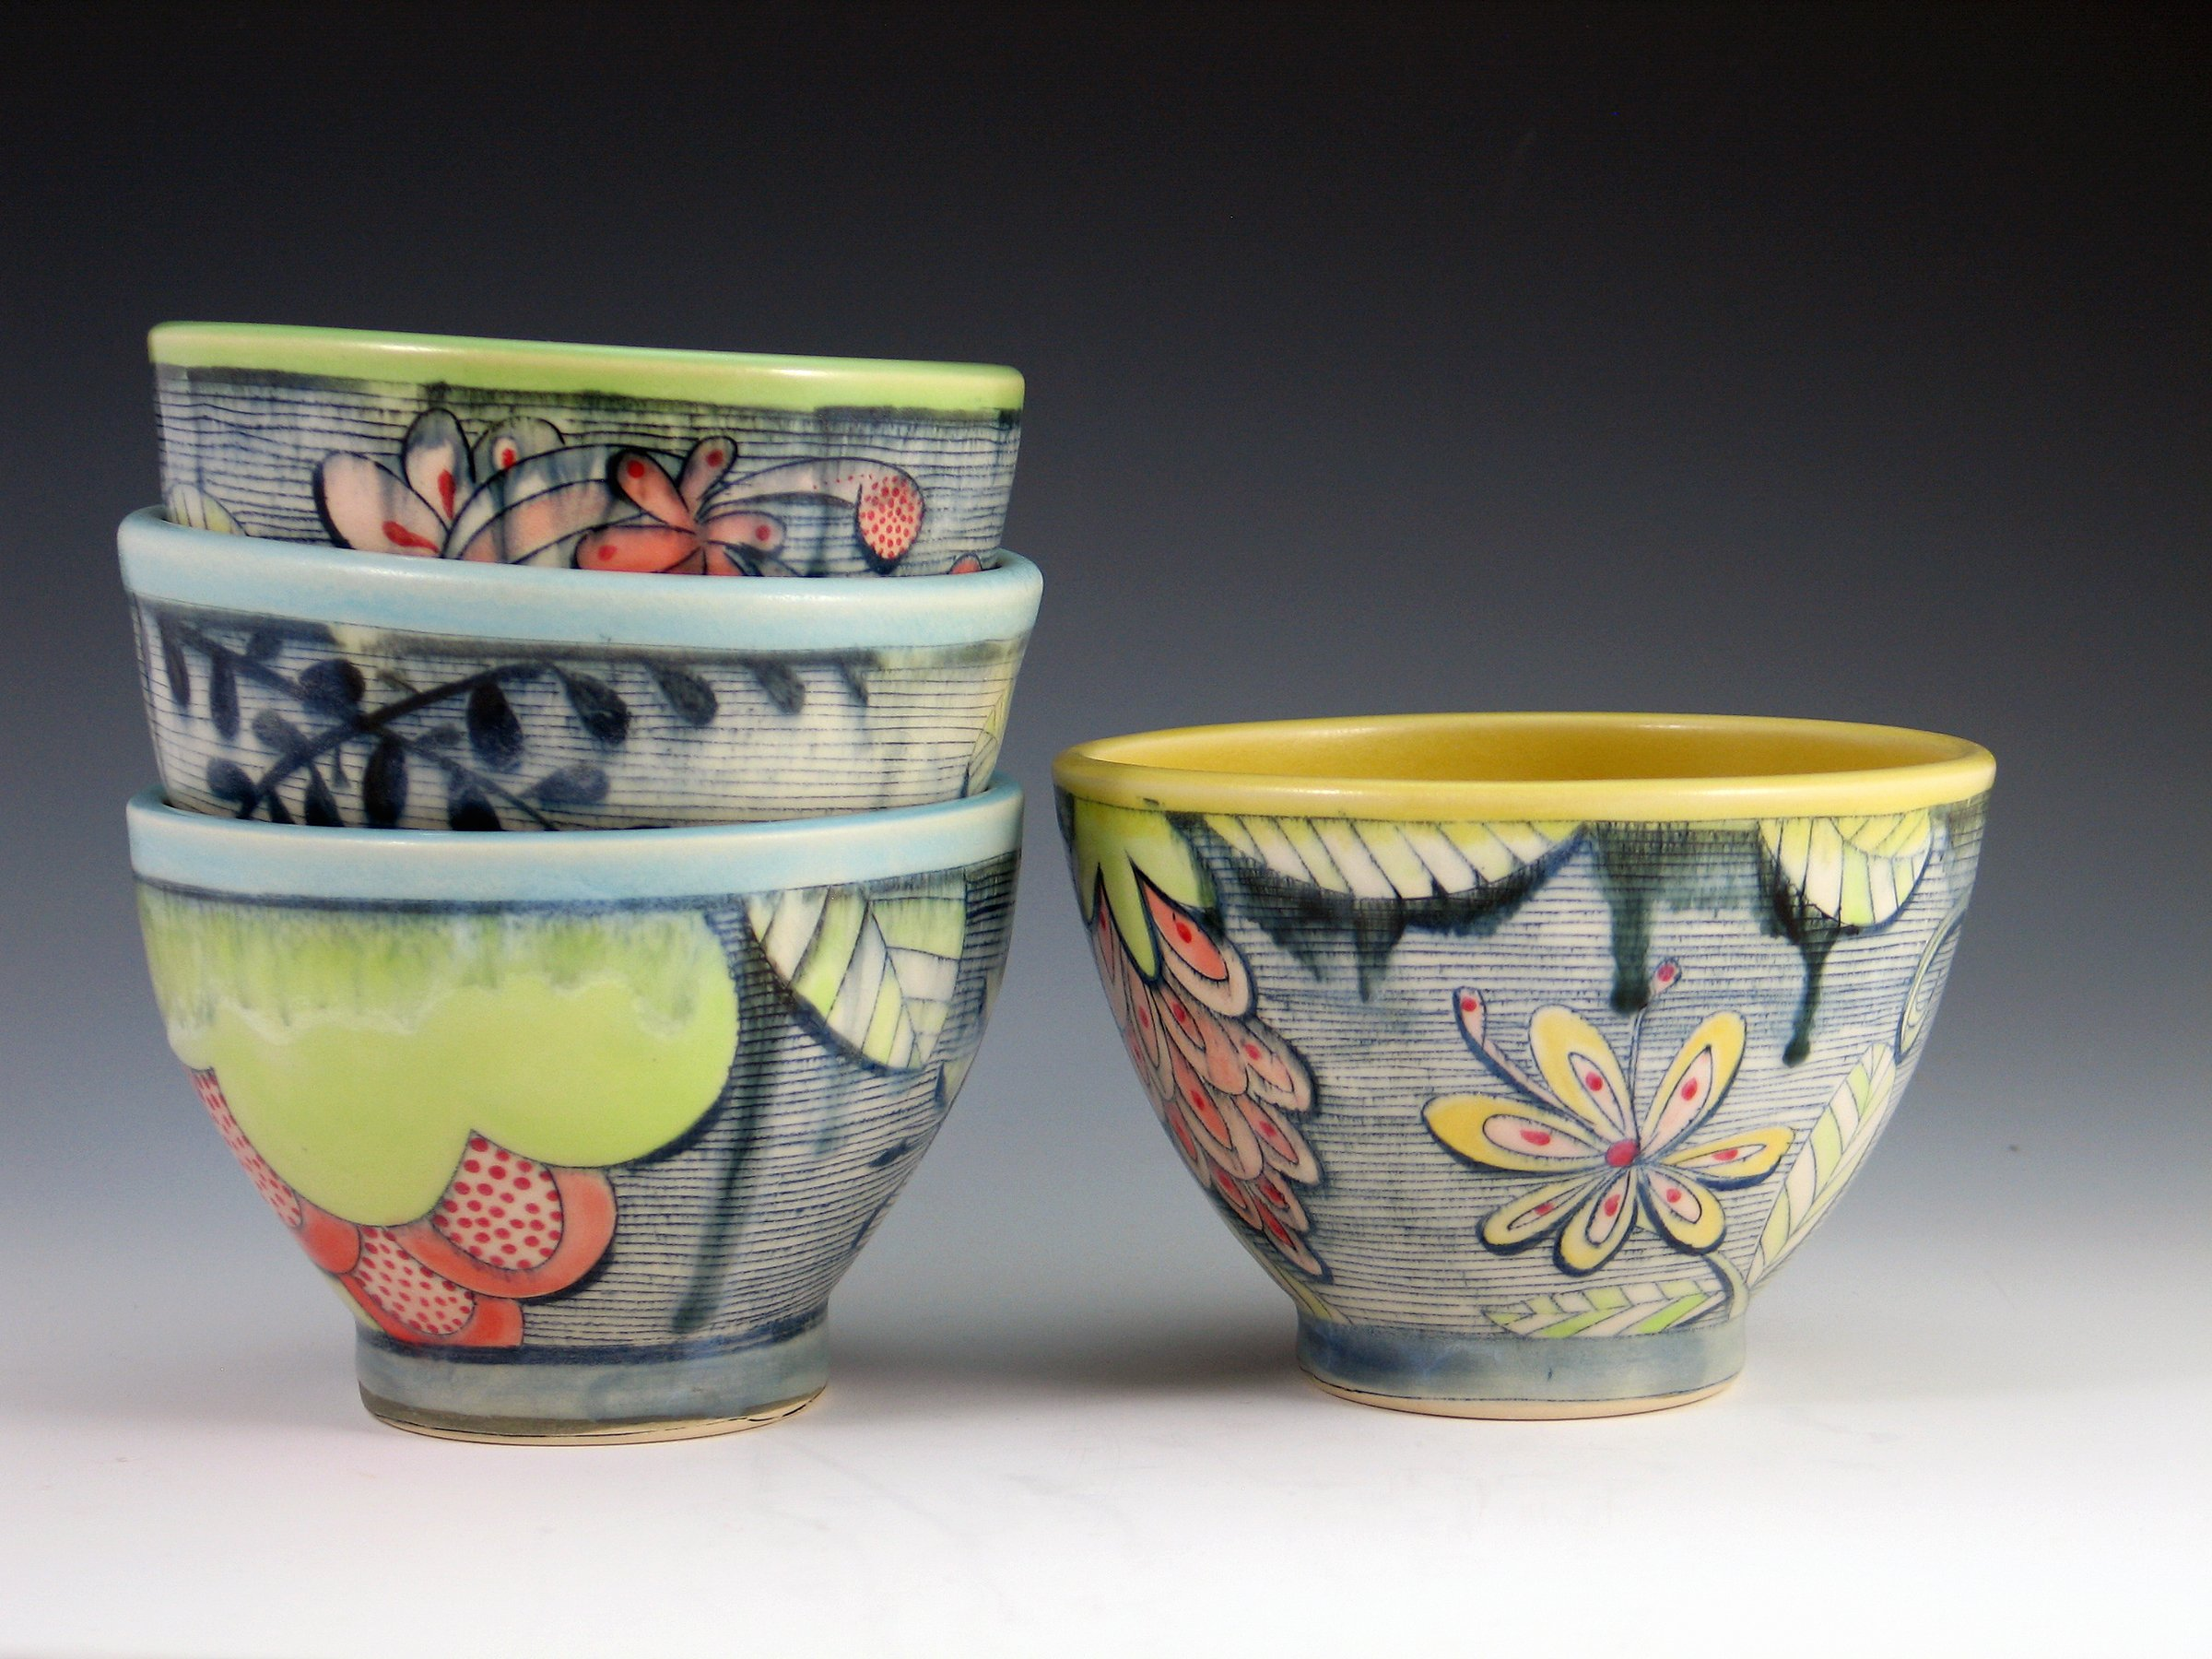 Stack of colorful ceramic bowls by Chandra DeBuse